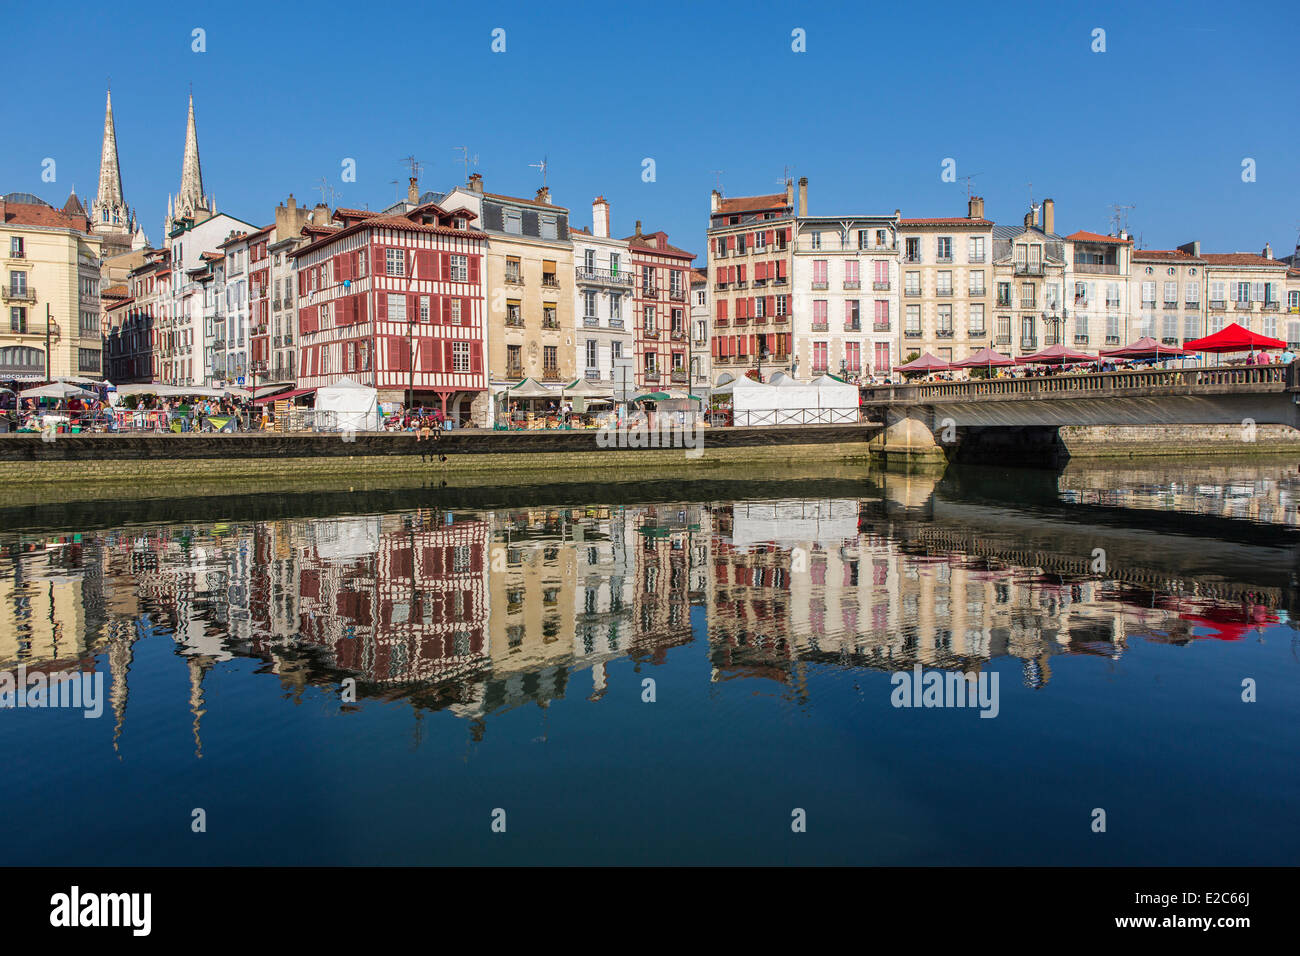 Rencontres bayonne pyrenees atlantiques